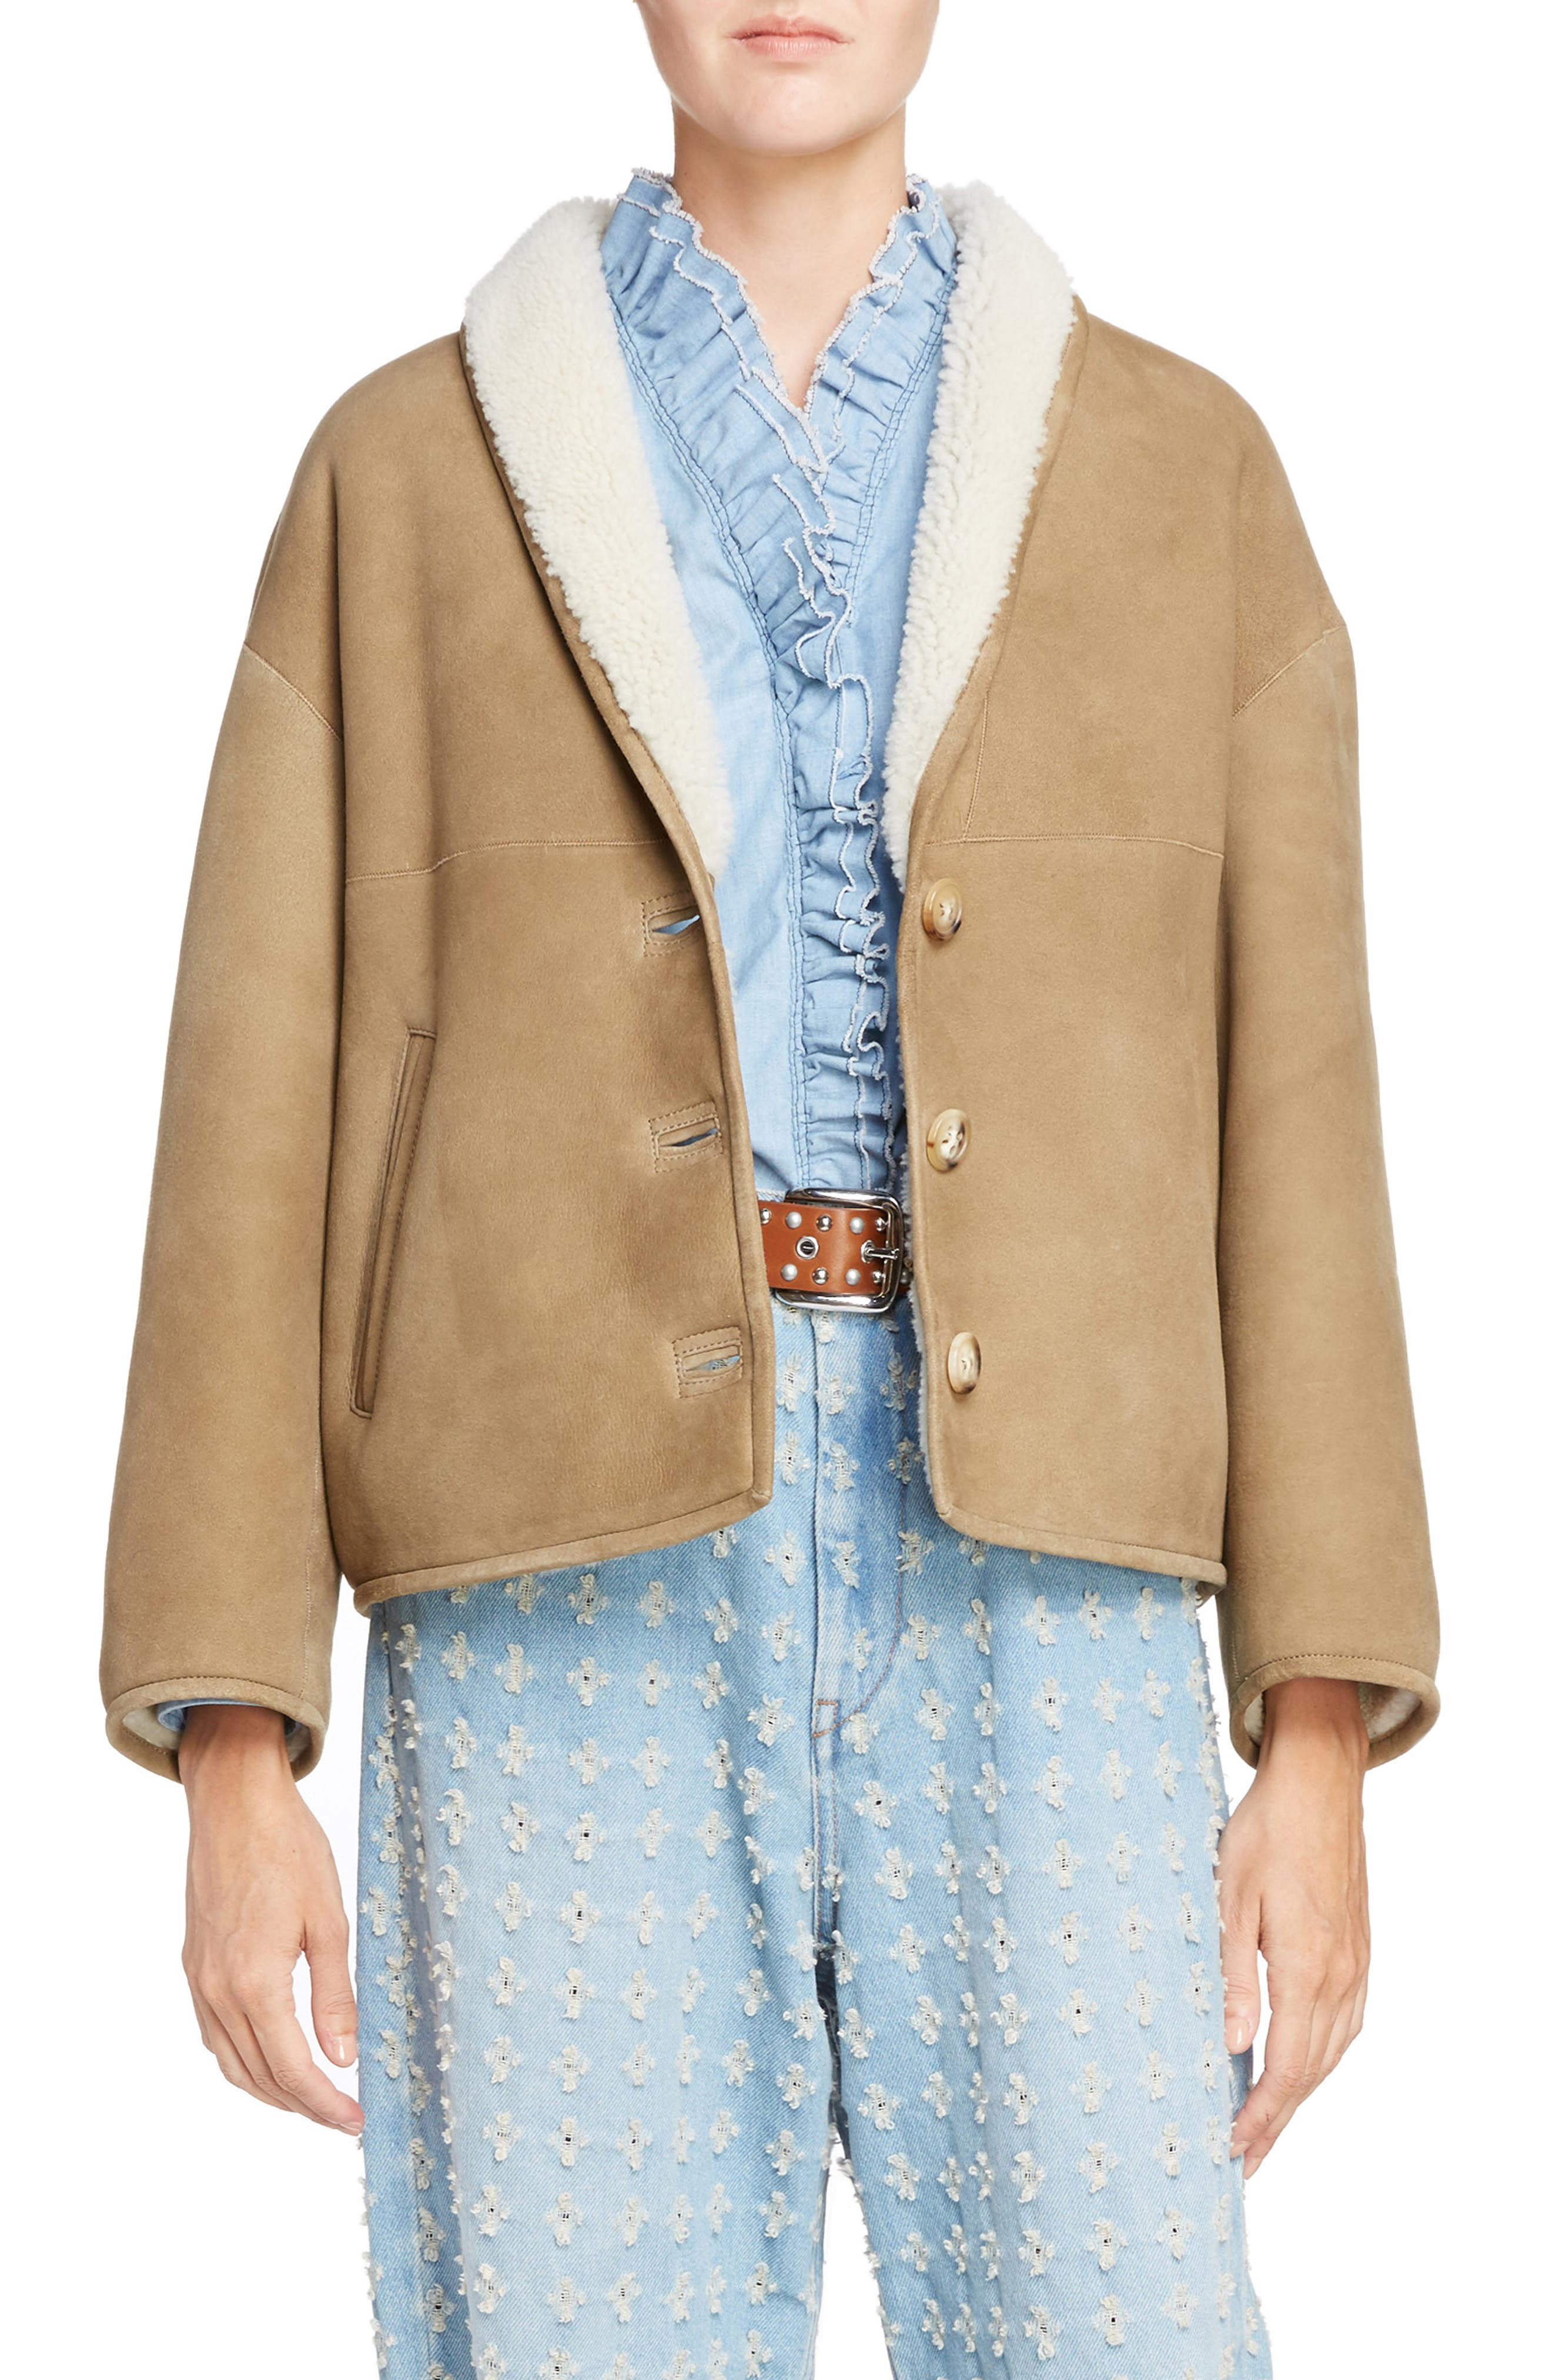 Isabel Marant Étoile Genuine Shearling Coat,                             Main thumbnail 1, color,                             Beige